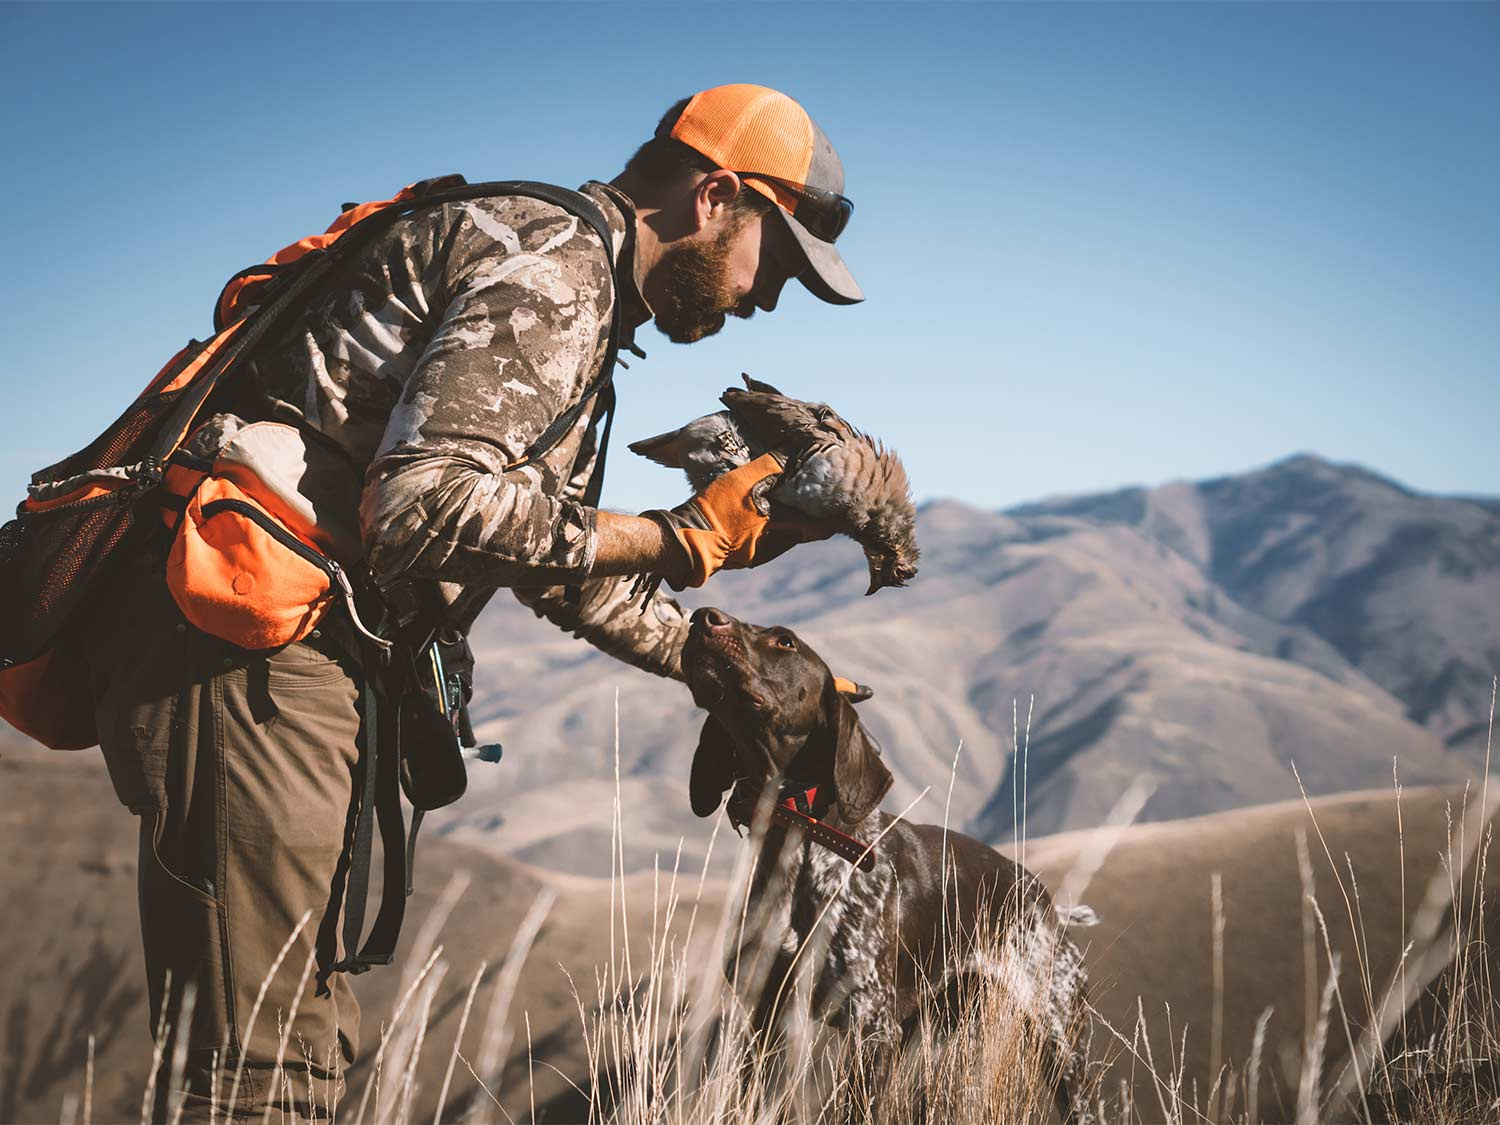 A hunter holds a bird in hand while letting the hunting dog sniff and catch the scent.